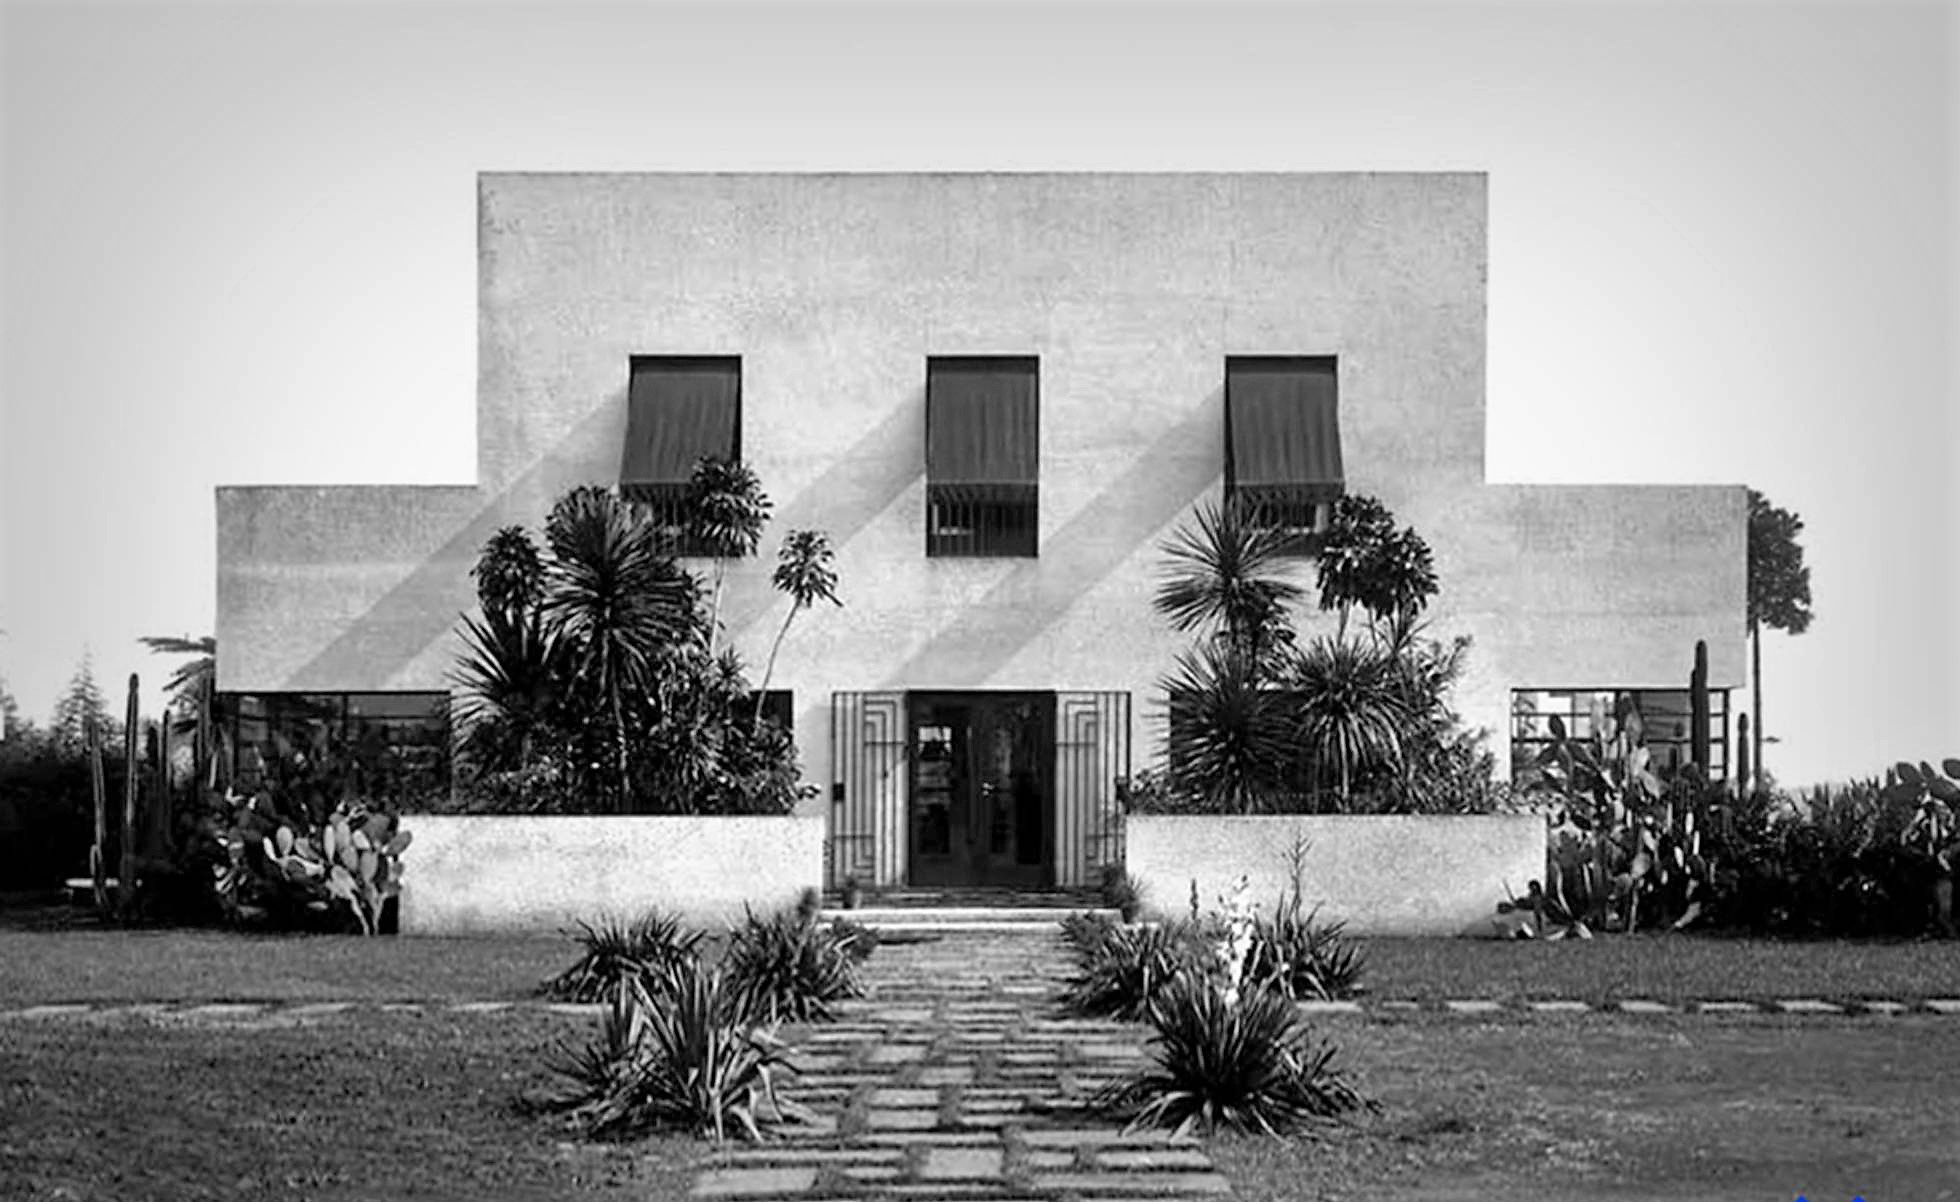 Brazil's first modern building: Gregori Warchavchik's house in São Paulo, now open to the public. Copyright: Yves Bruand.